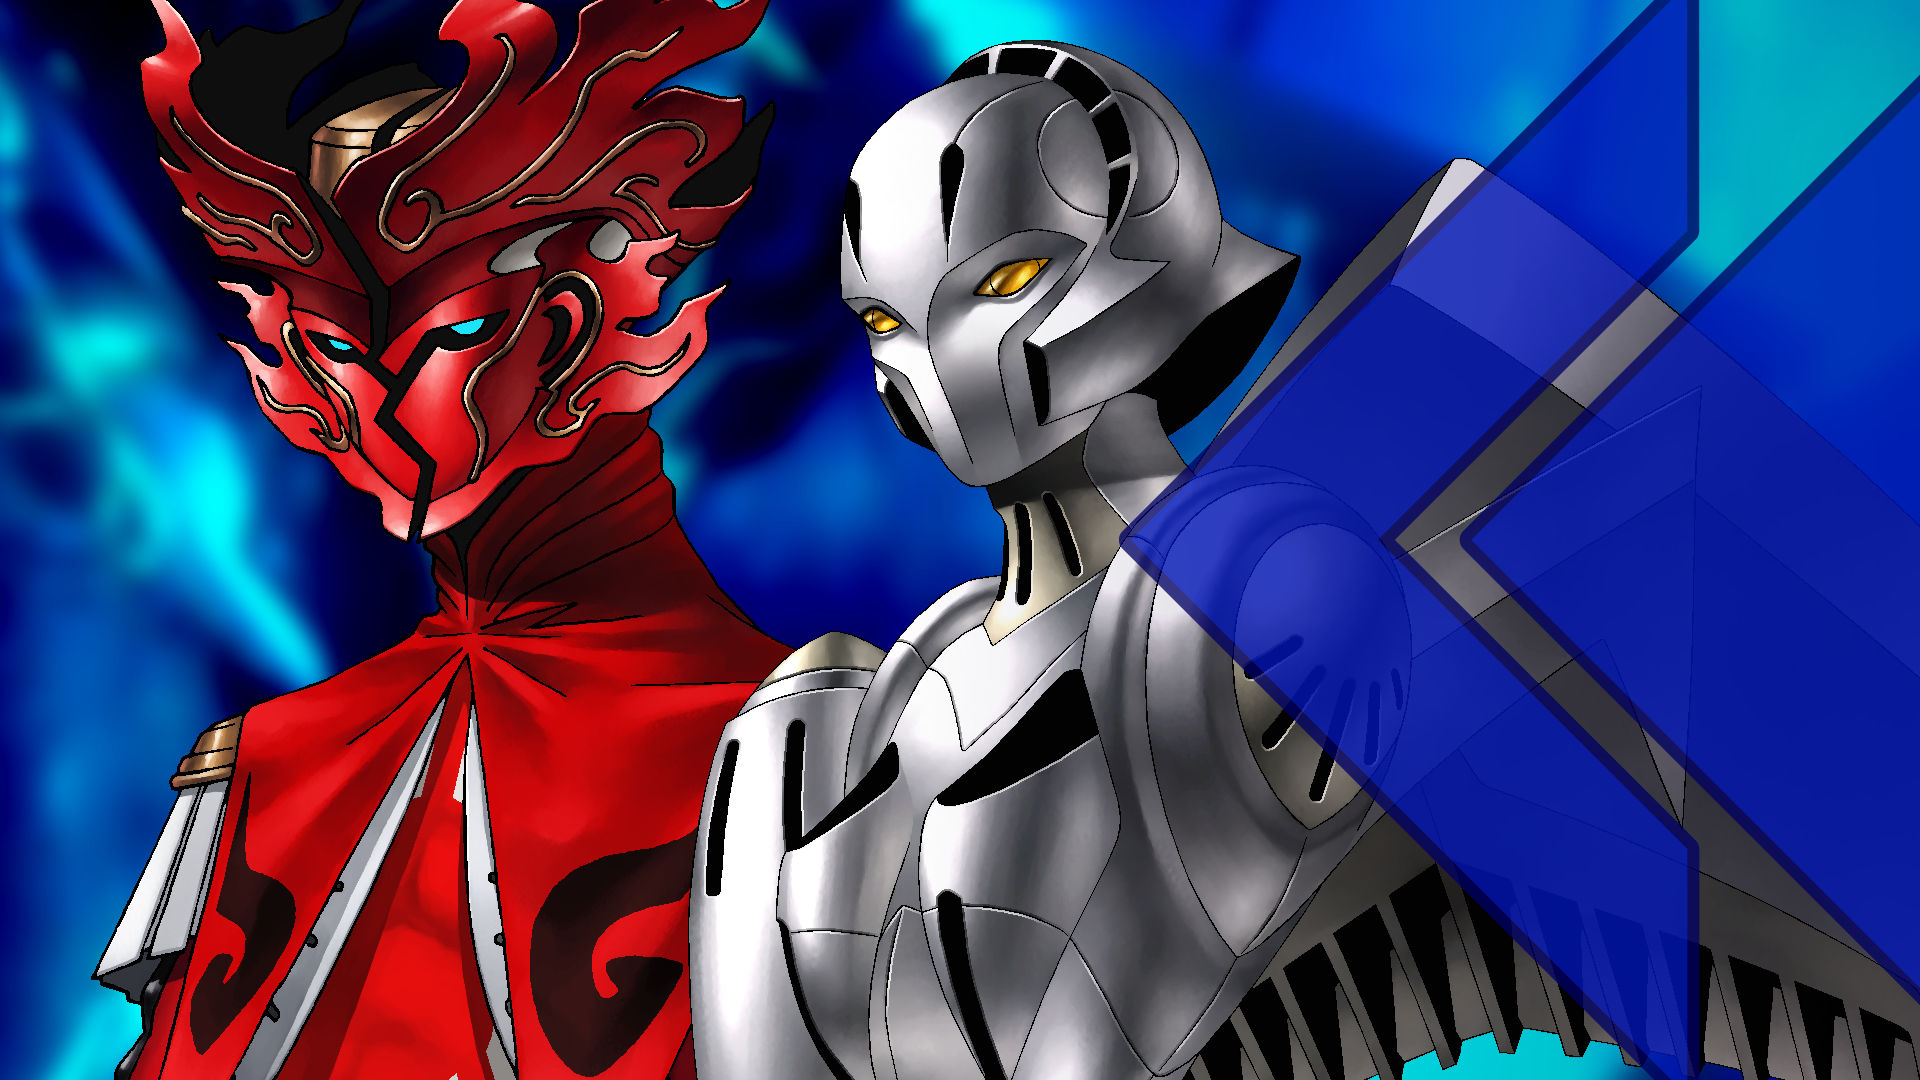 A flaming red persona with an ornate mask stands near a silver robotic-looking persona with golden eyes